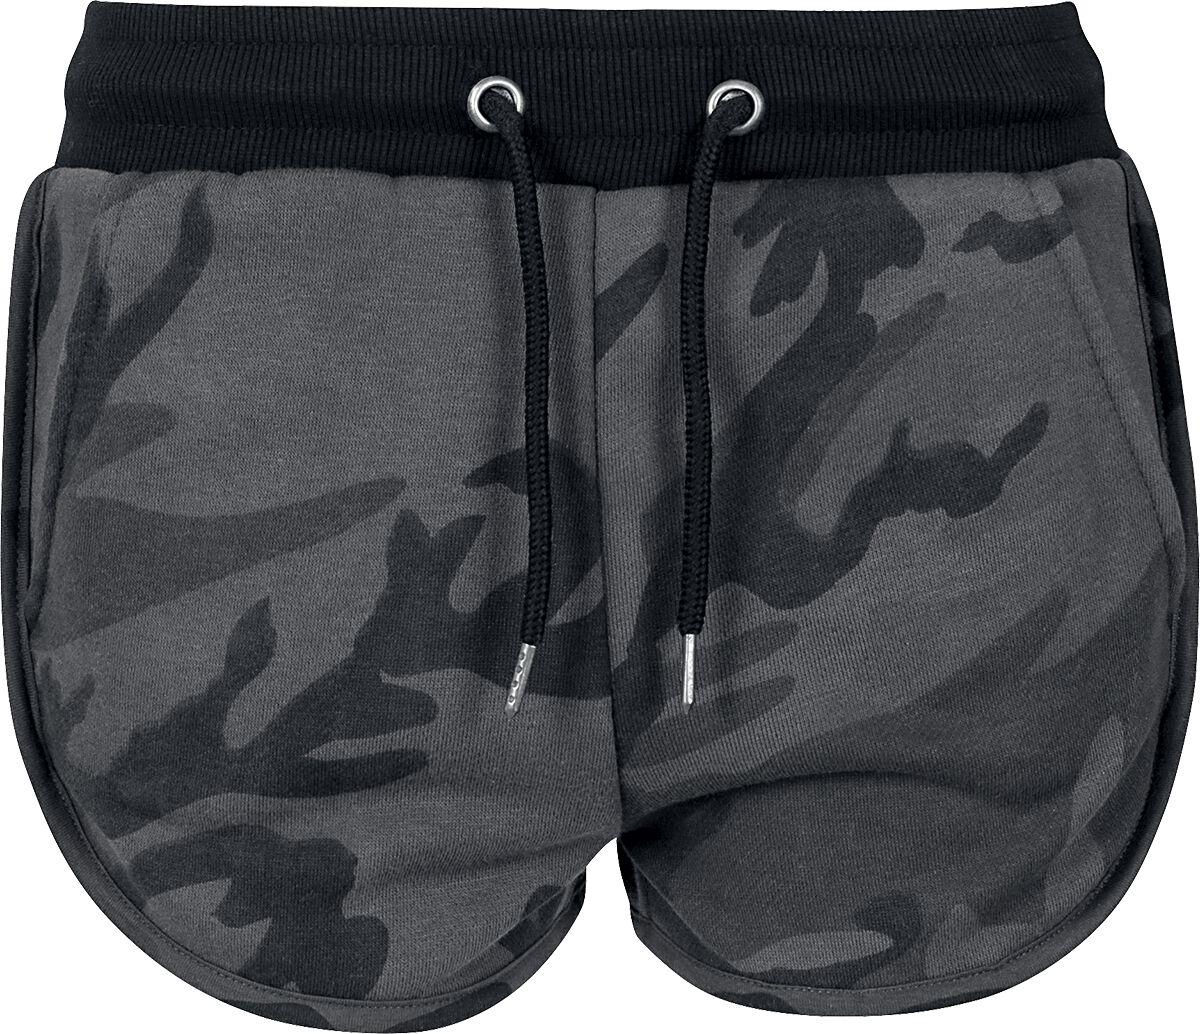 Hosen für Frauen - Urban Classics Ladies Camo Hotpants Girl Hot Pant darkcamo  - Onlineshop EMP